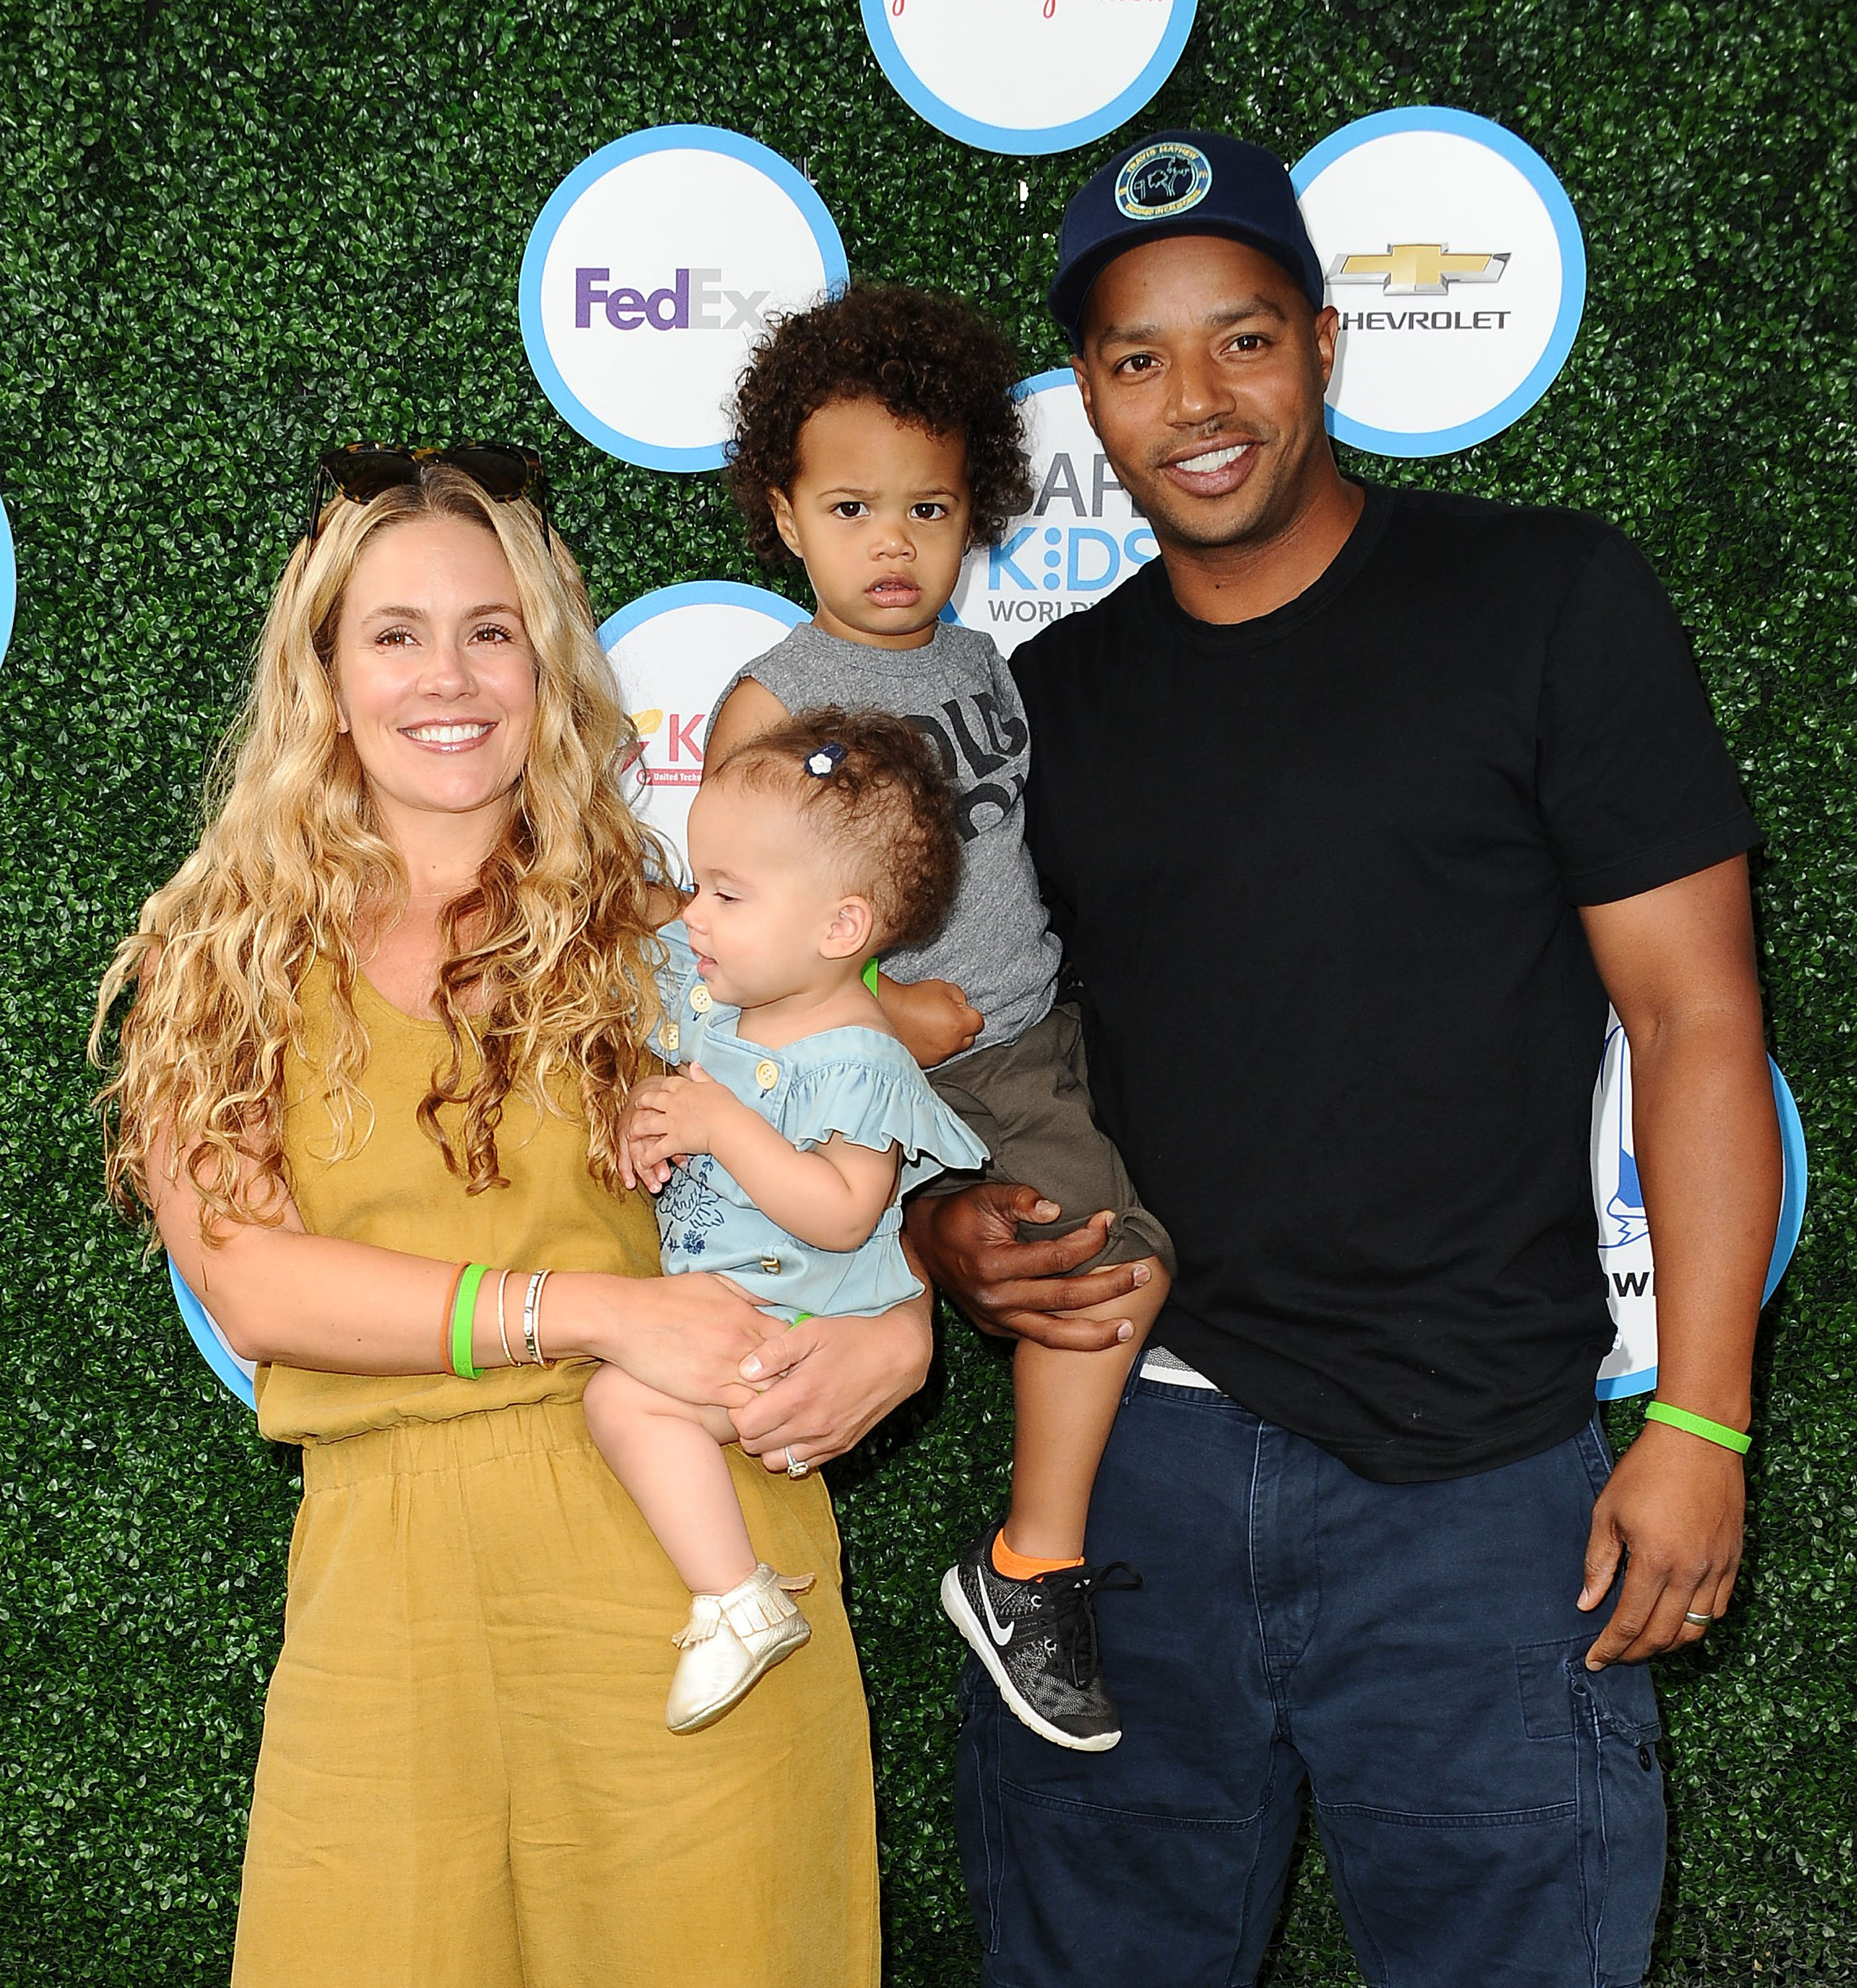 CaCee Cobb, Donald Faison, Wilder Frances Faison and Rocco Faison at Safe Kids Day at Smashbox Studios on April 24, 2016 in Culver City, California | Photo: Getty Images